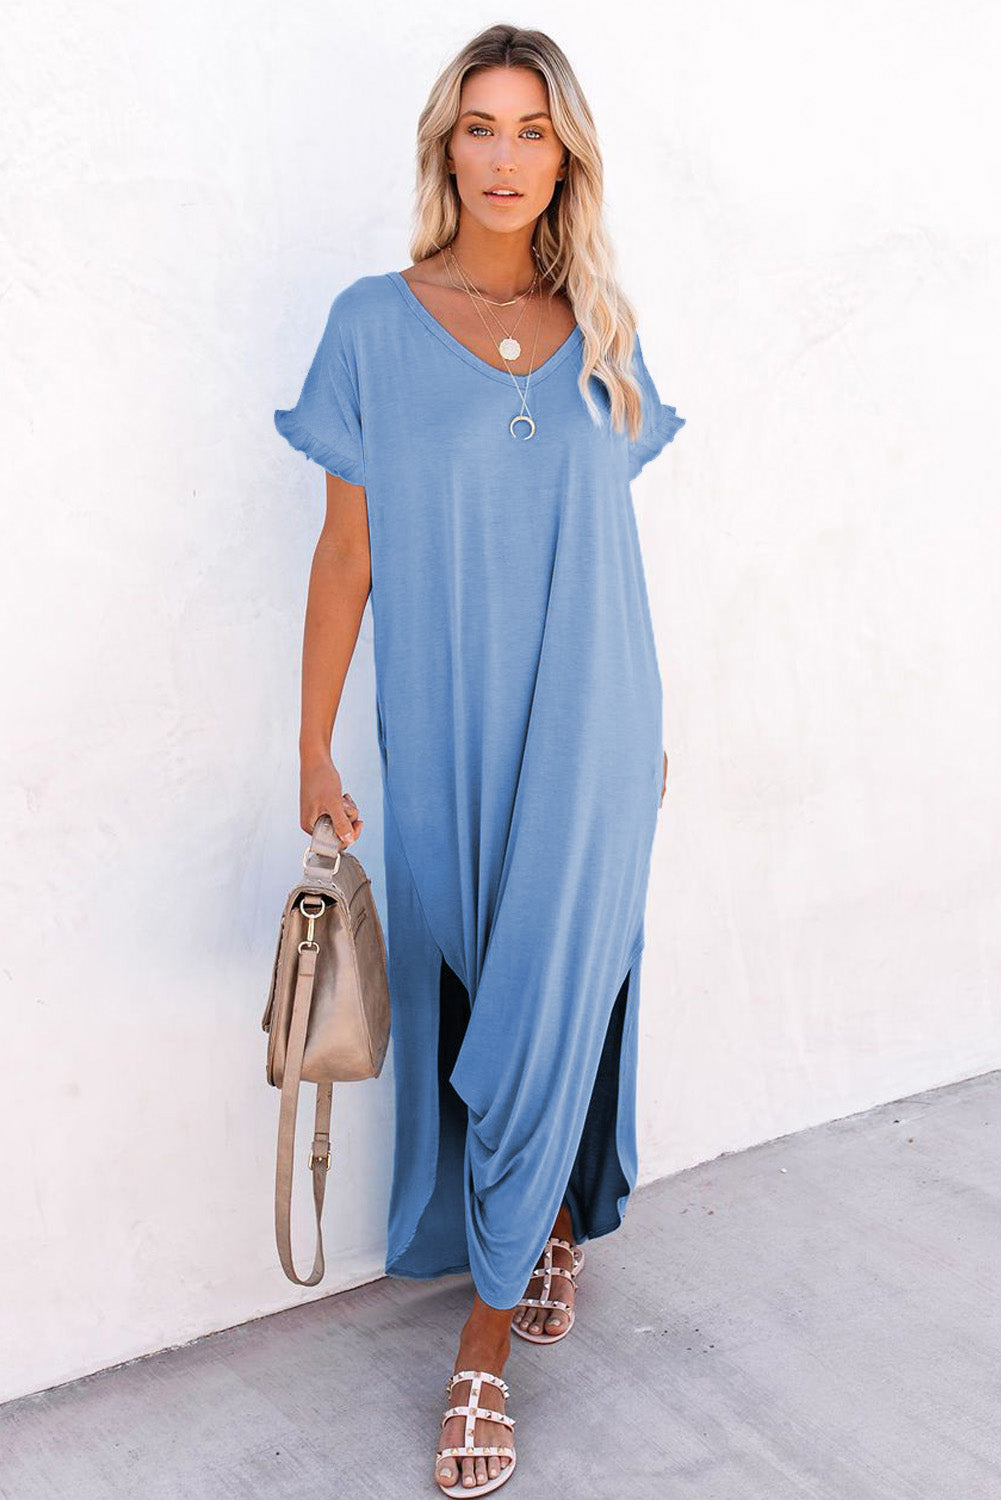 Sky Blue Loose Fit Cotton Blend V Neck Maxi Dress with Slits Maxi Dresses Discount Designer Fashion Clothes Shoes Bags Women Men Kids Children Black Owned Business